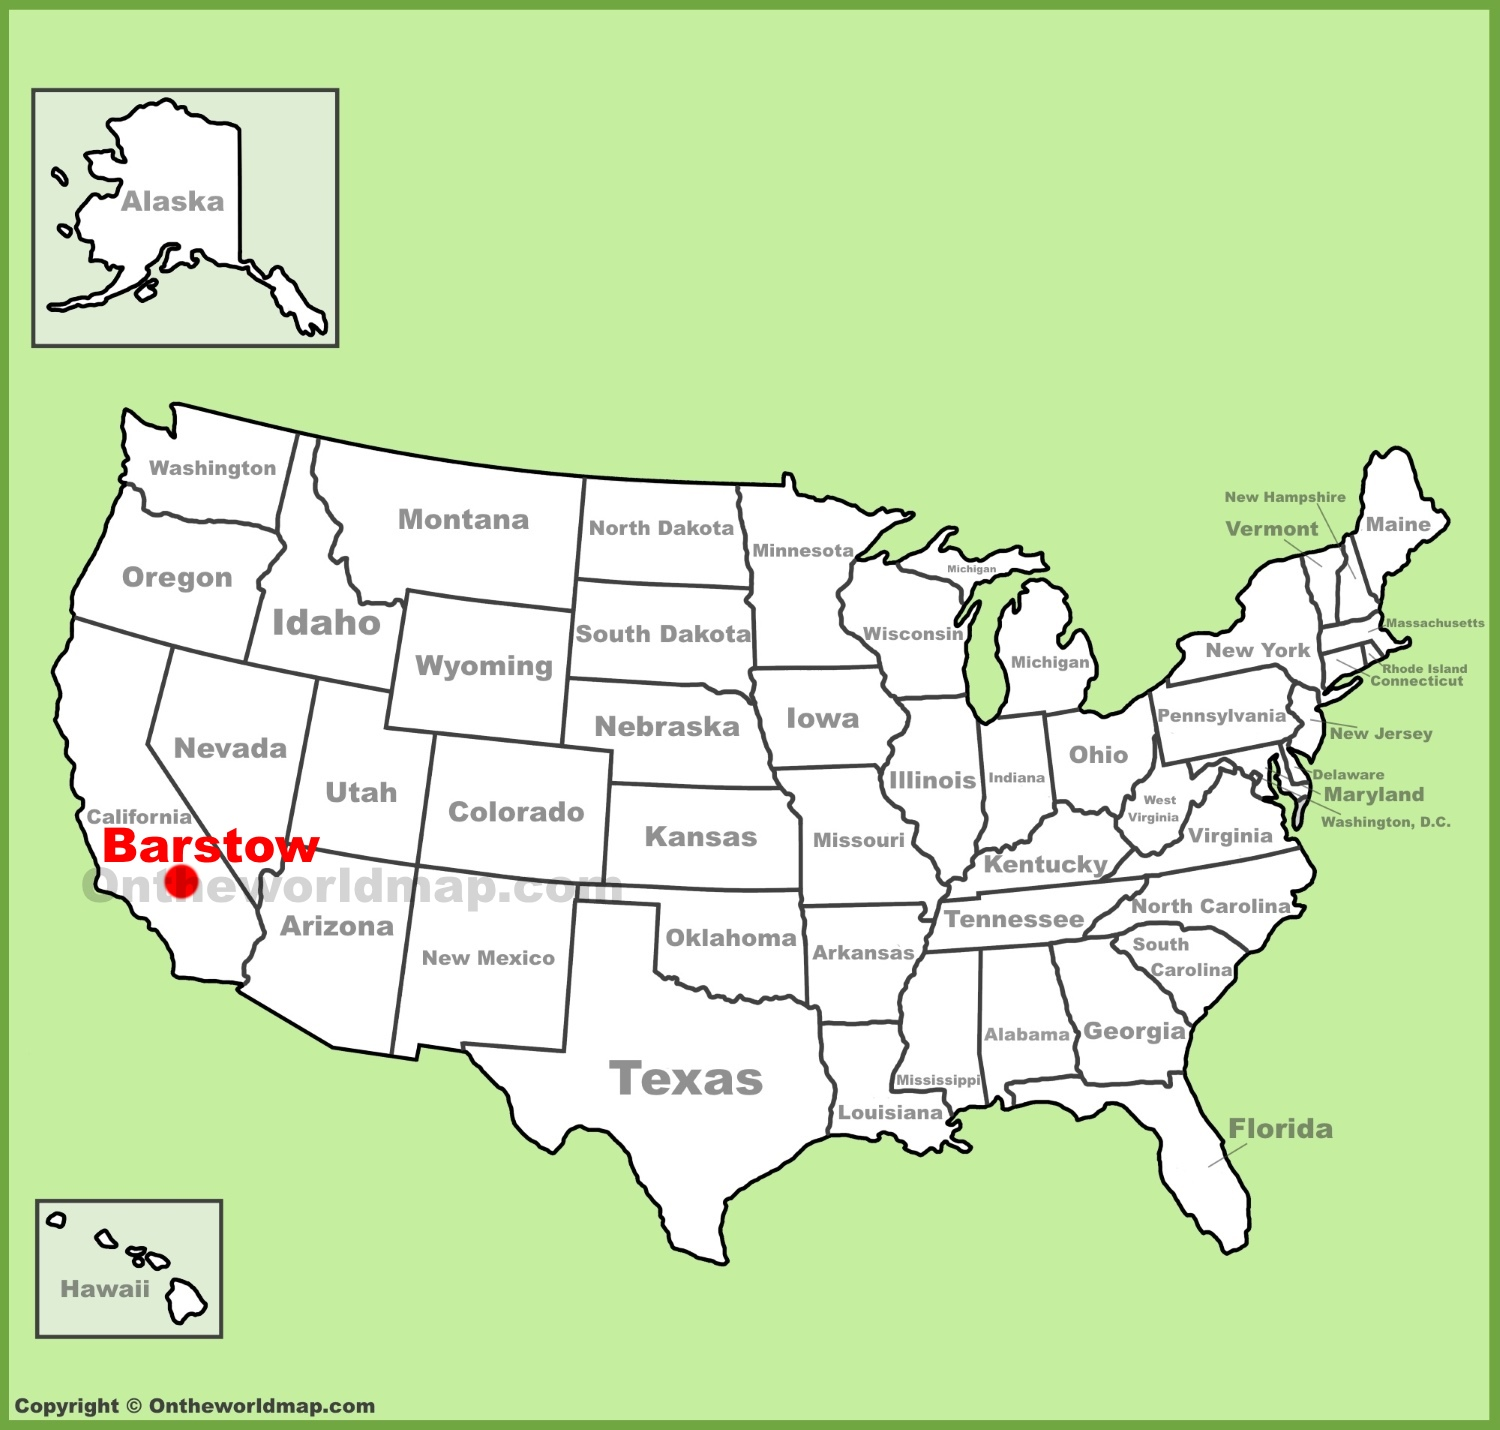 Barstow location on the US Map